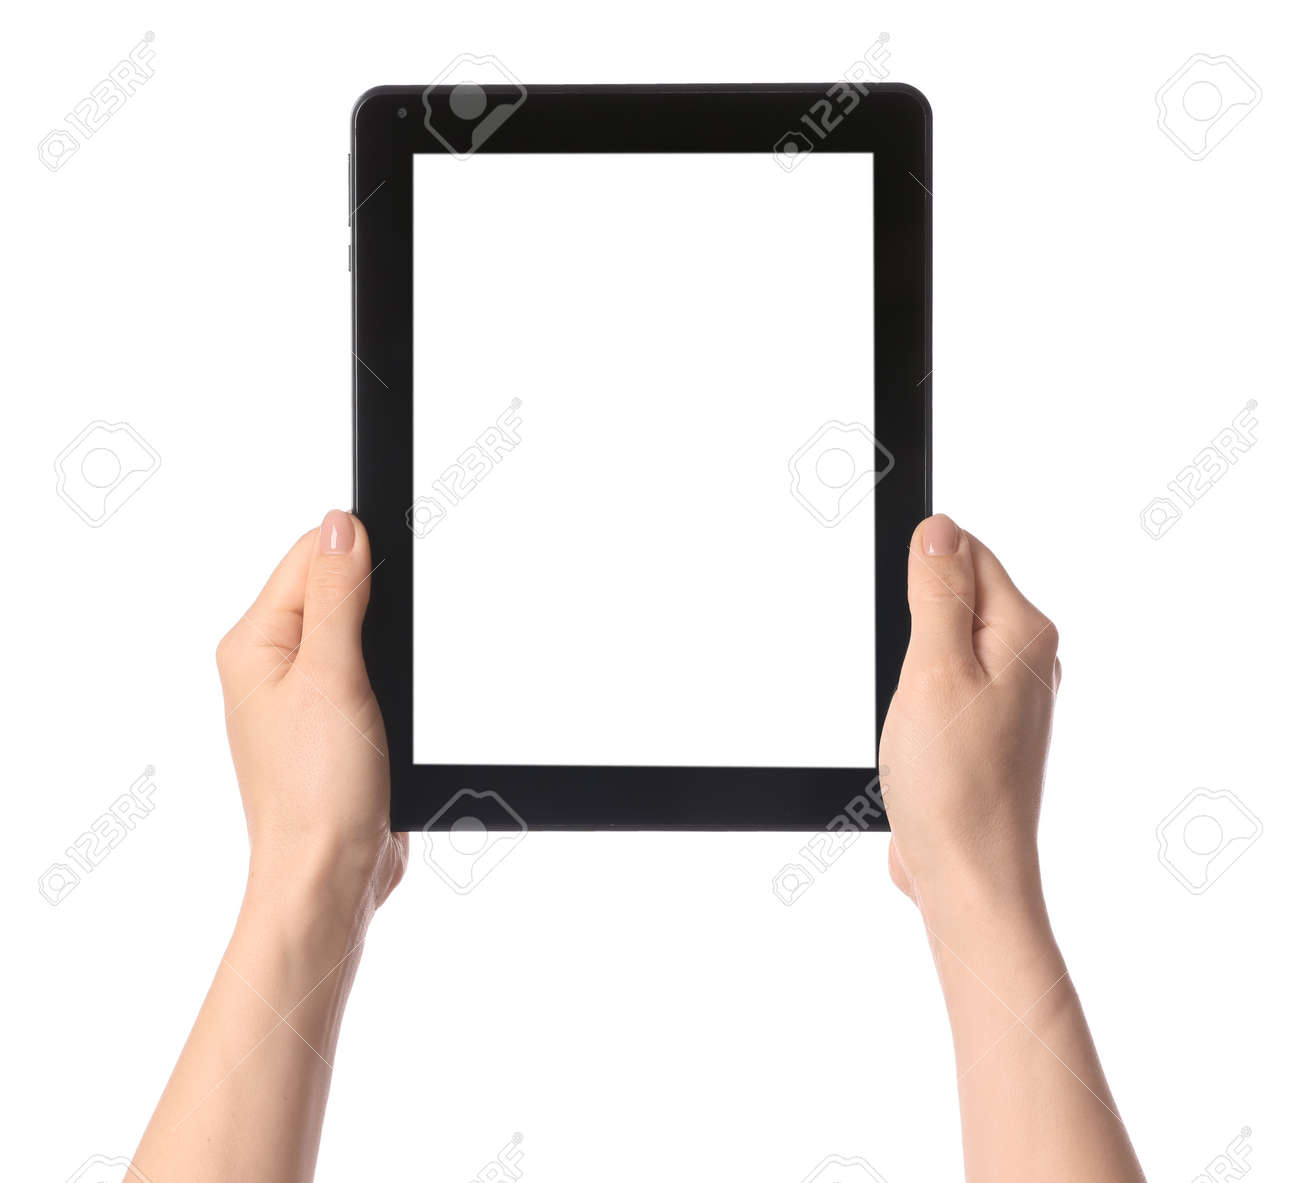 Hands with modern tablet computer on white background - 169058773